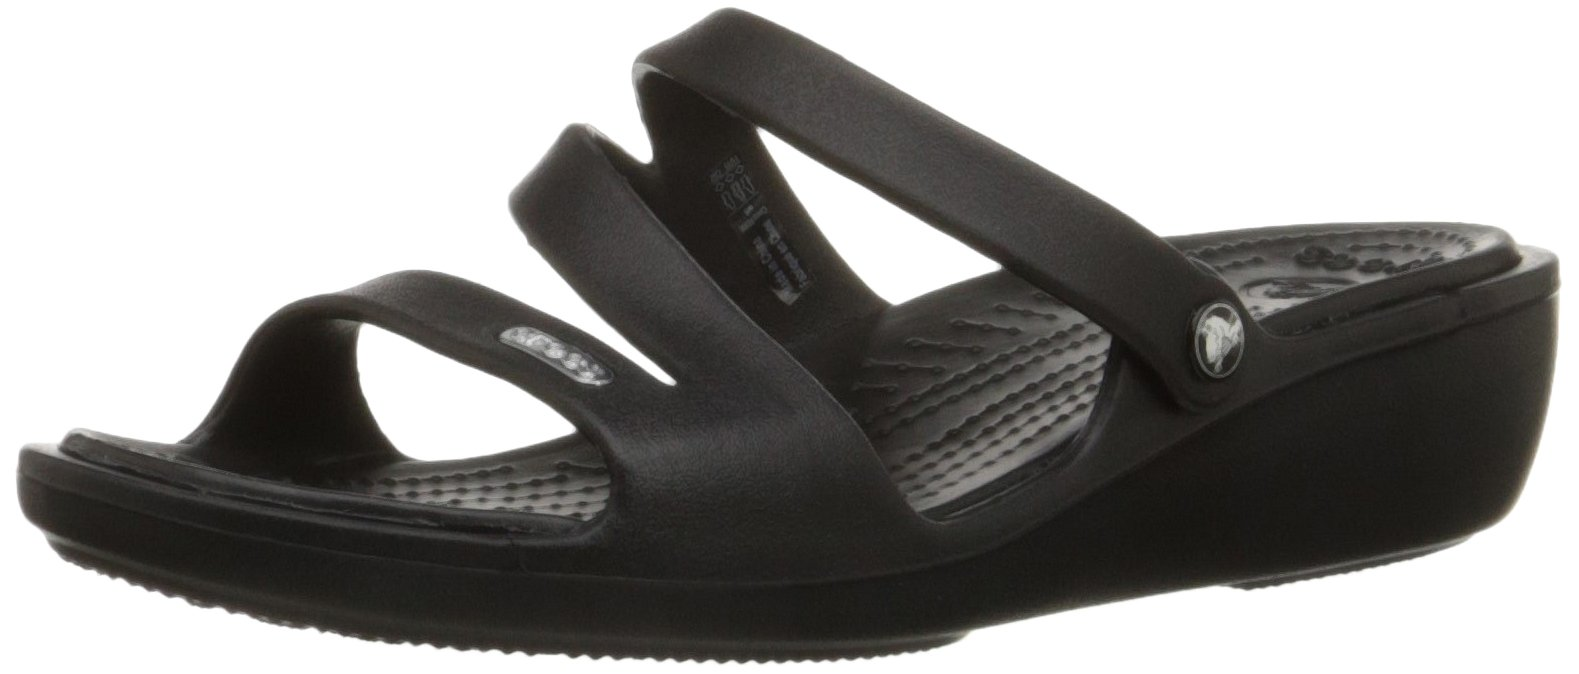 Crocs Women's Patricia Wedge Sandal, Black/Black, 8 M US by Crocs